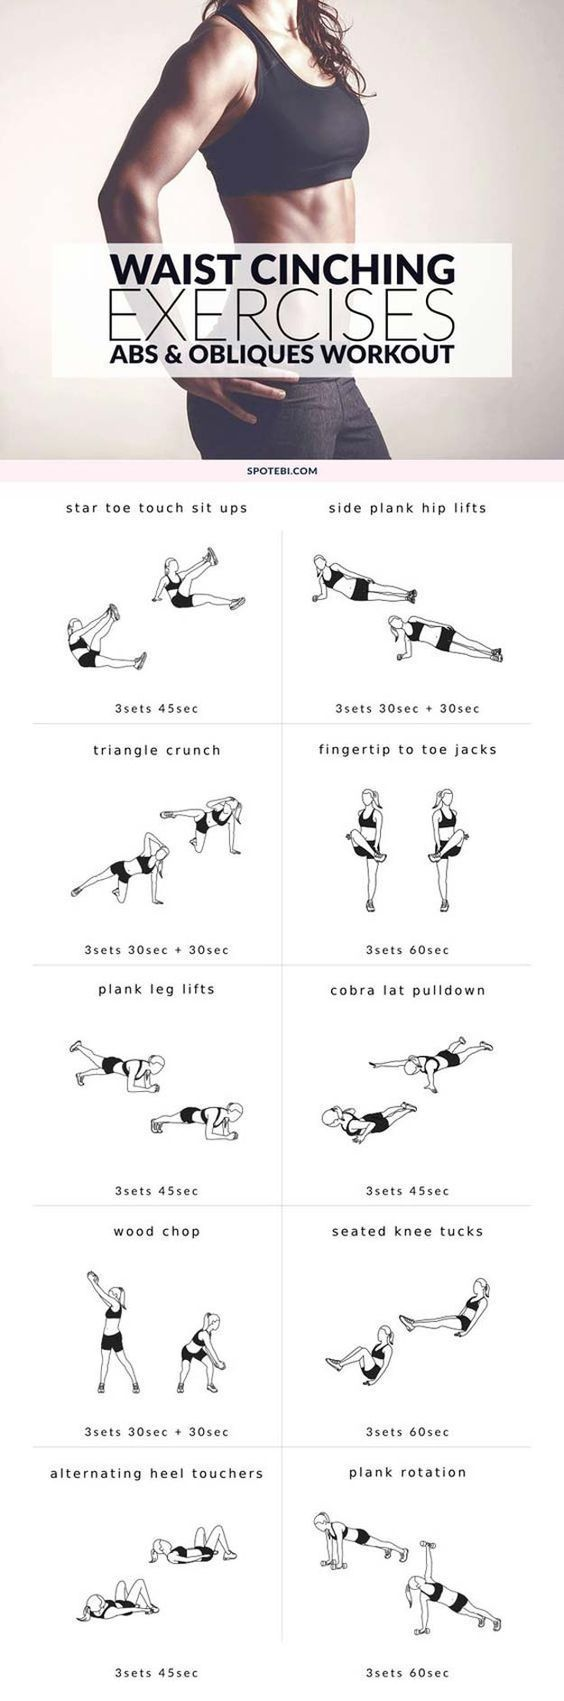 Abs workout-no gym required! Follow our Instagram page for more daily workouts. https://www.instagram.com/diaryofafitmommyofficial/